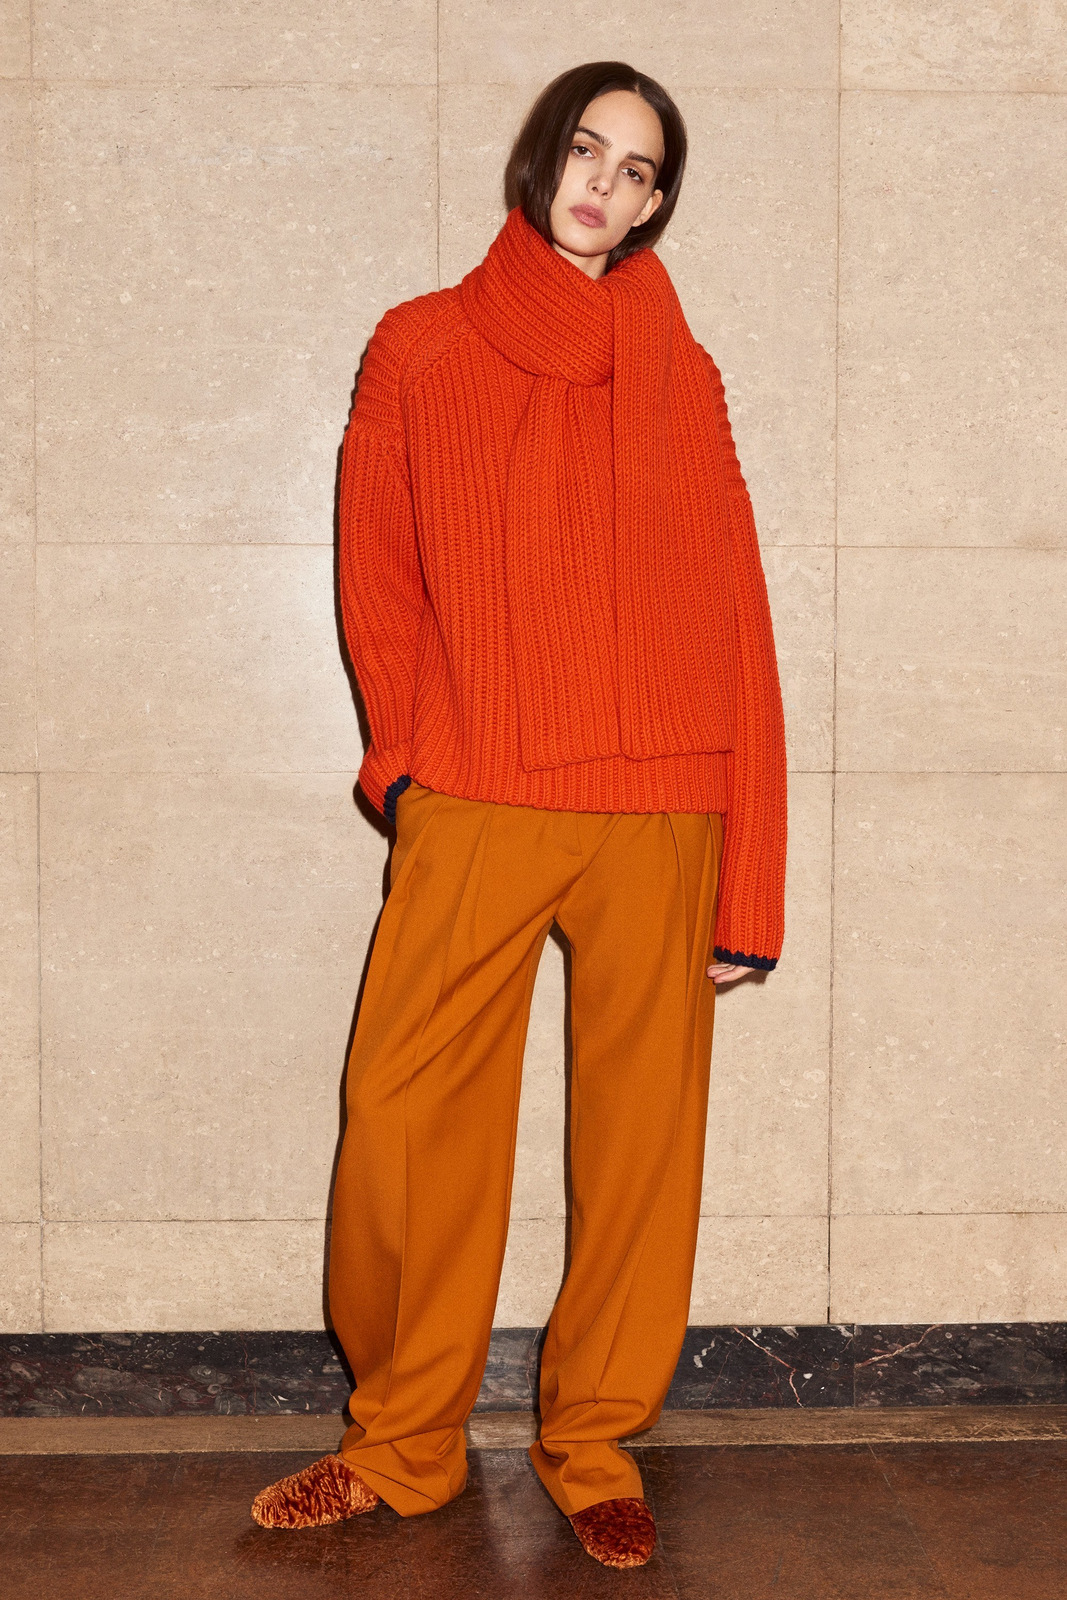 Oversized Knitted Sweater Fall 2017 - Victoria Victoria Beckham Pre-Fall 2017